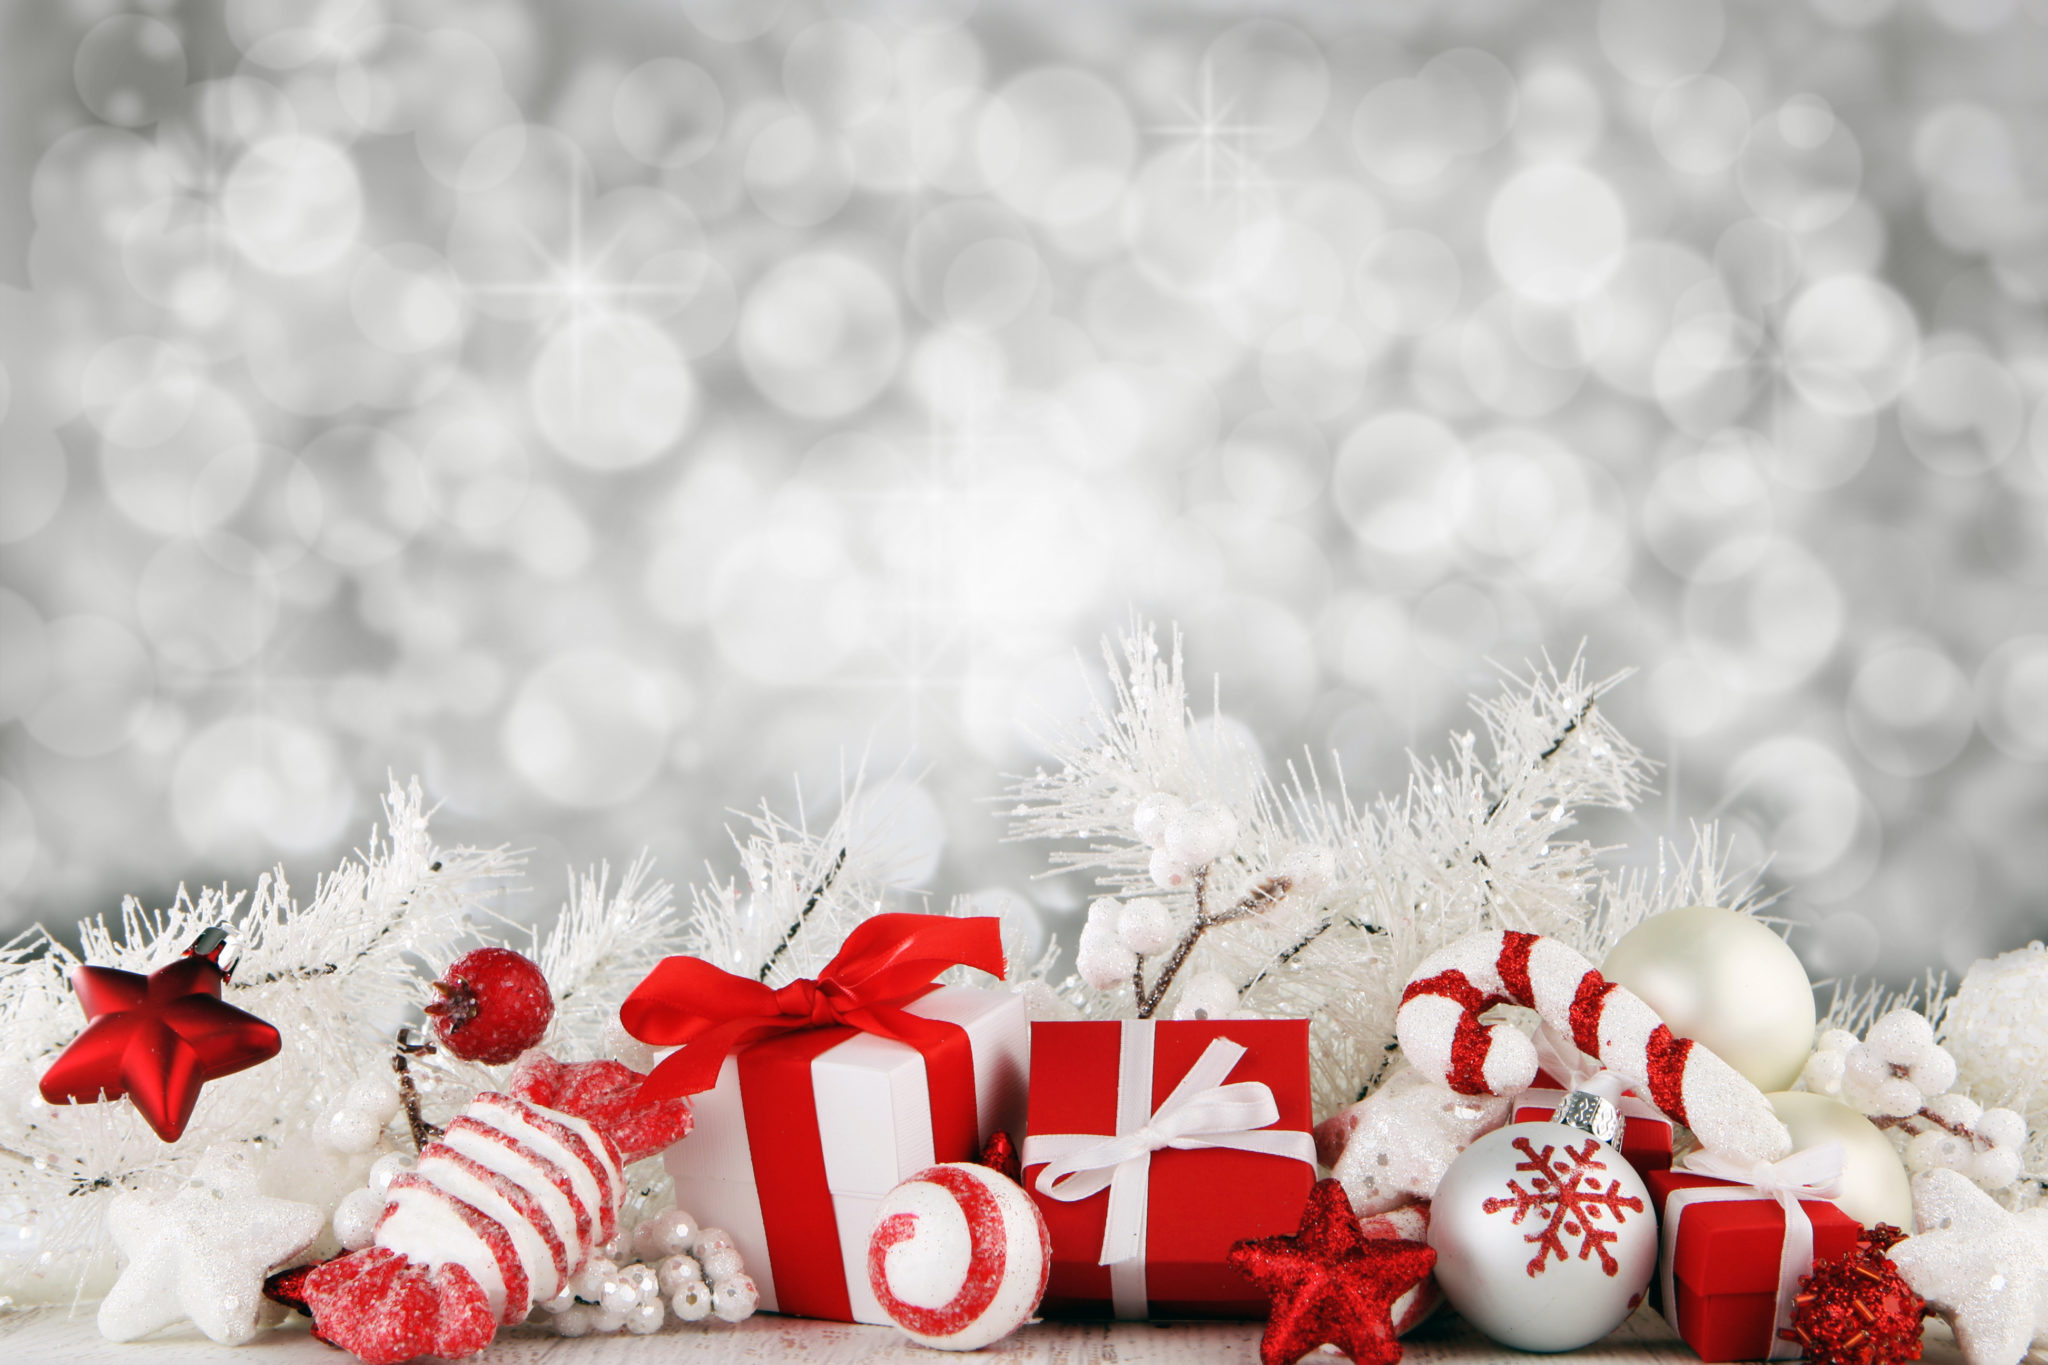 Christmas Background Images and Wallpaper [New and Best]   Trends 2048x1365